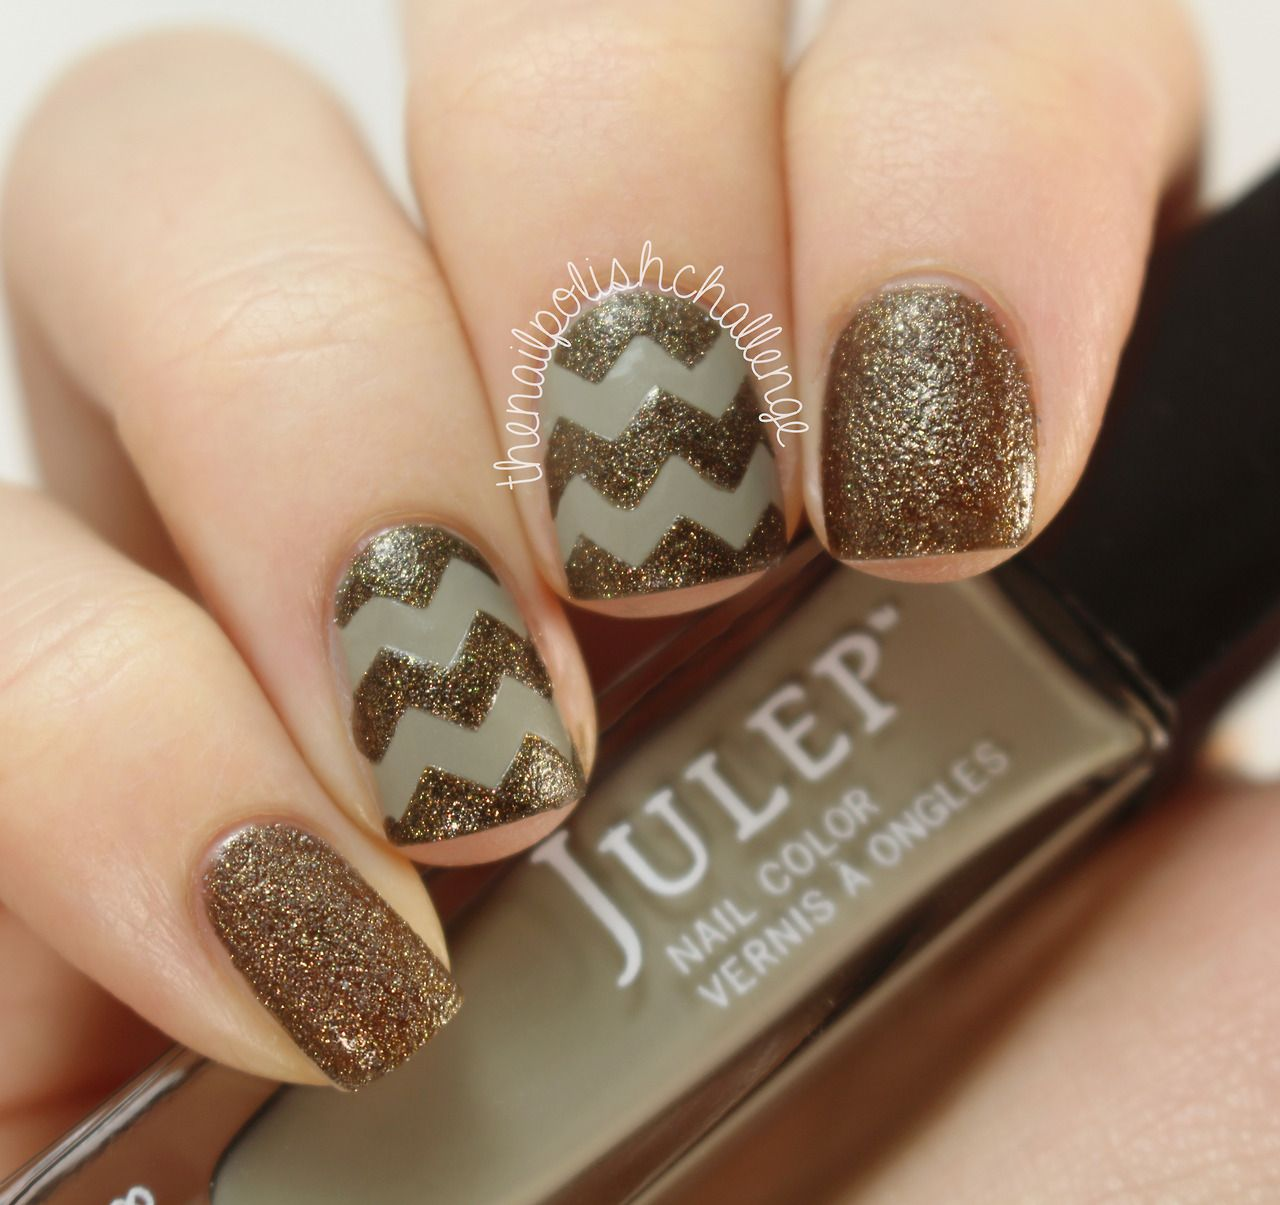 Chevron nail art. Want to know how I got such neat lines? Check out the blog post here.